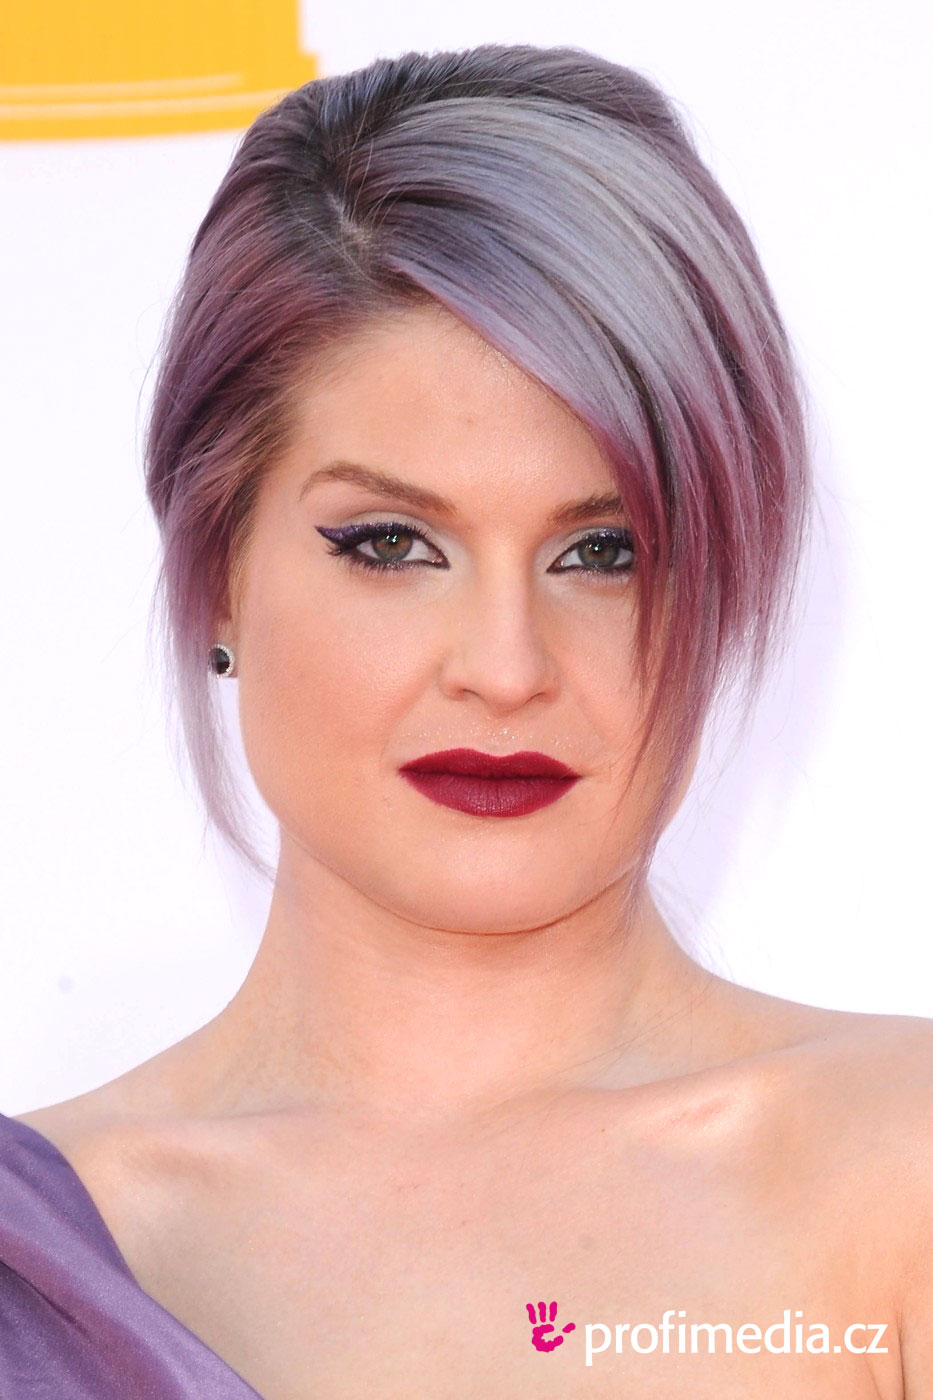 kelly osbourne 2012kelly osbourne 2016, kelly osbourne one word, kelly osbourne 2017, kelly osbourne one word remix, kelly osbourne changes, kelly osbourne слушать, kelly osbourne one word mp3, kelly osbourne one word lyrics, kelly osbourne photos, kelly osbourne instagram, kelly osbourne - shut up, kelly osbourne twitter, kelly osbourne red carpet, kelly osbourne vk, kelly osbourne 2005, kelly osbourne hairstyles, kelly osbourne one world, kelly osbourne tattoos, kelly osbourne 2012, kelly osbourne glasses